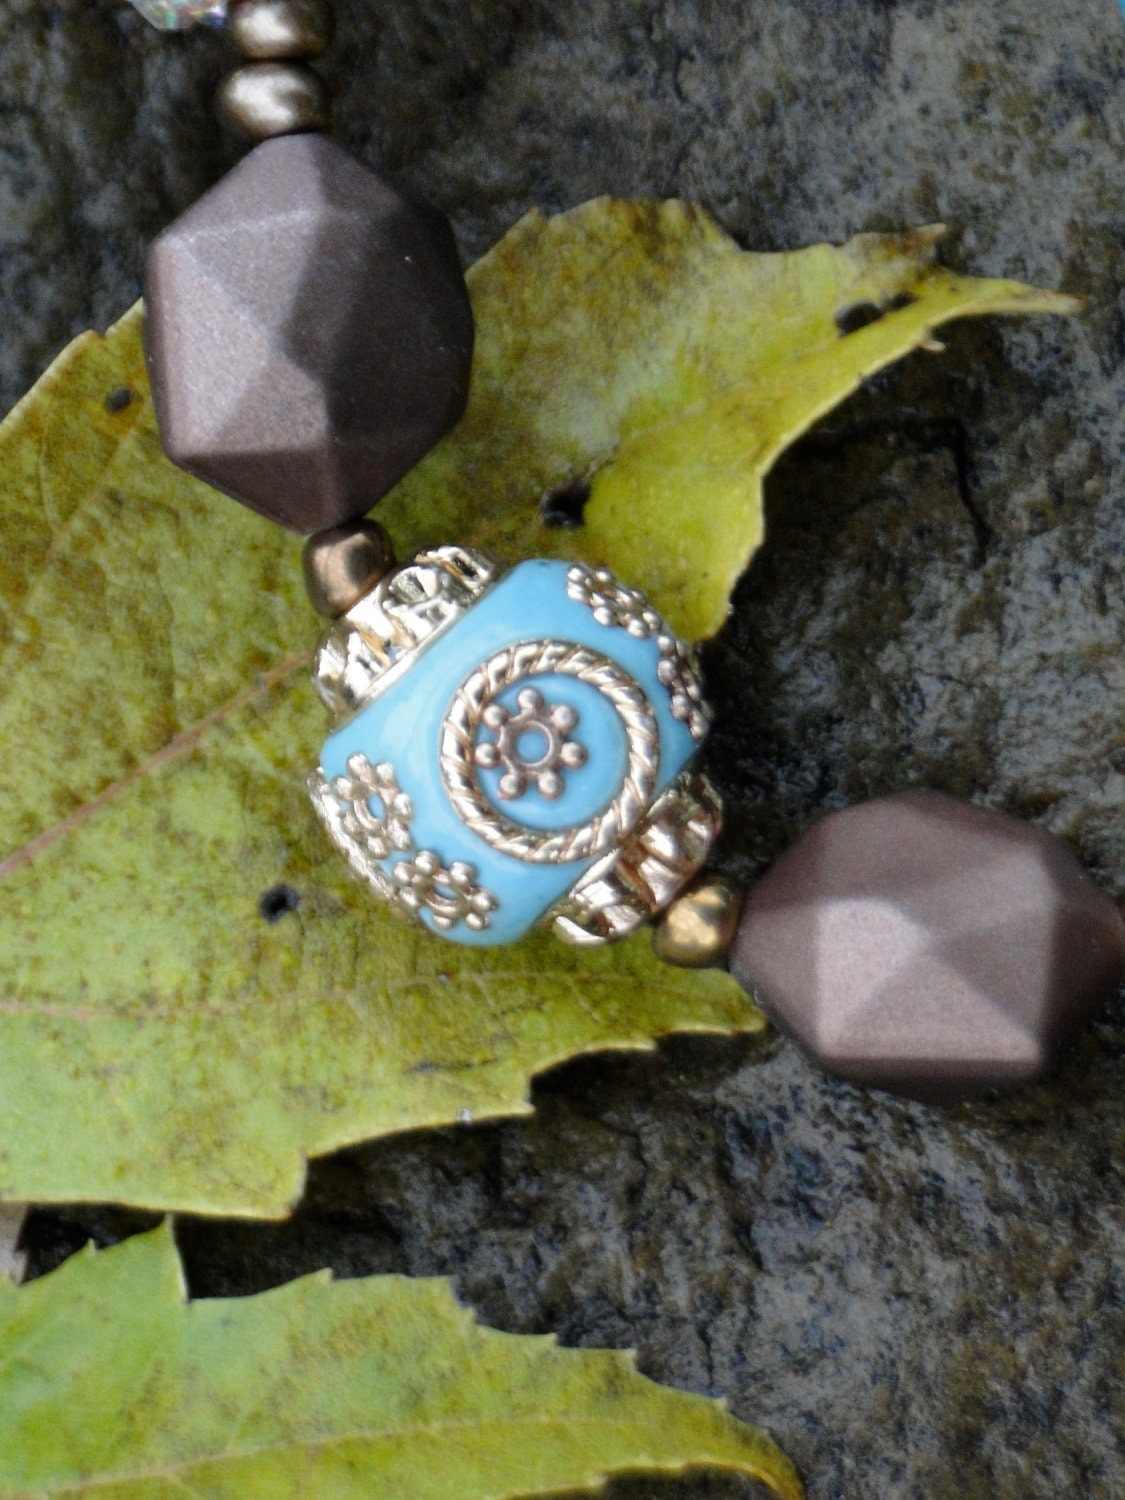 Fountains of Diamonds Necklace, Bracelet, Earrings Set - Turquoise, Teal, Brown, Autumn - Build a Jamaican Church